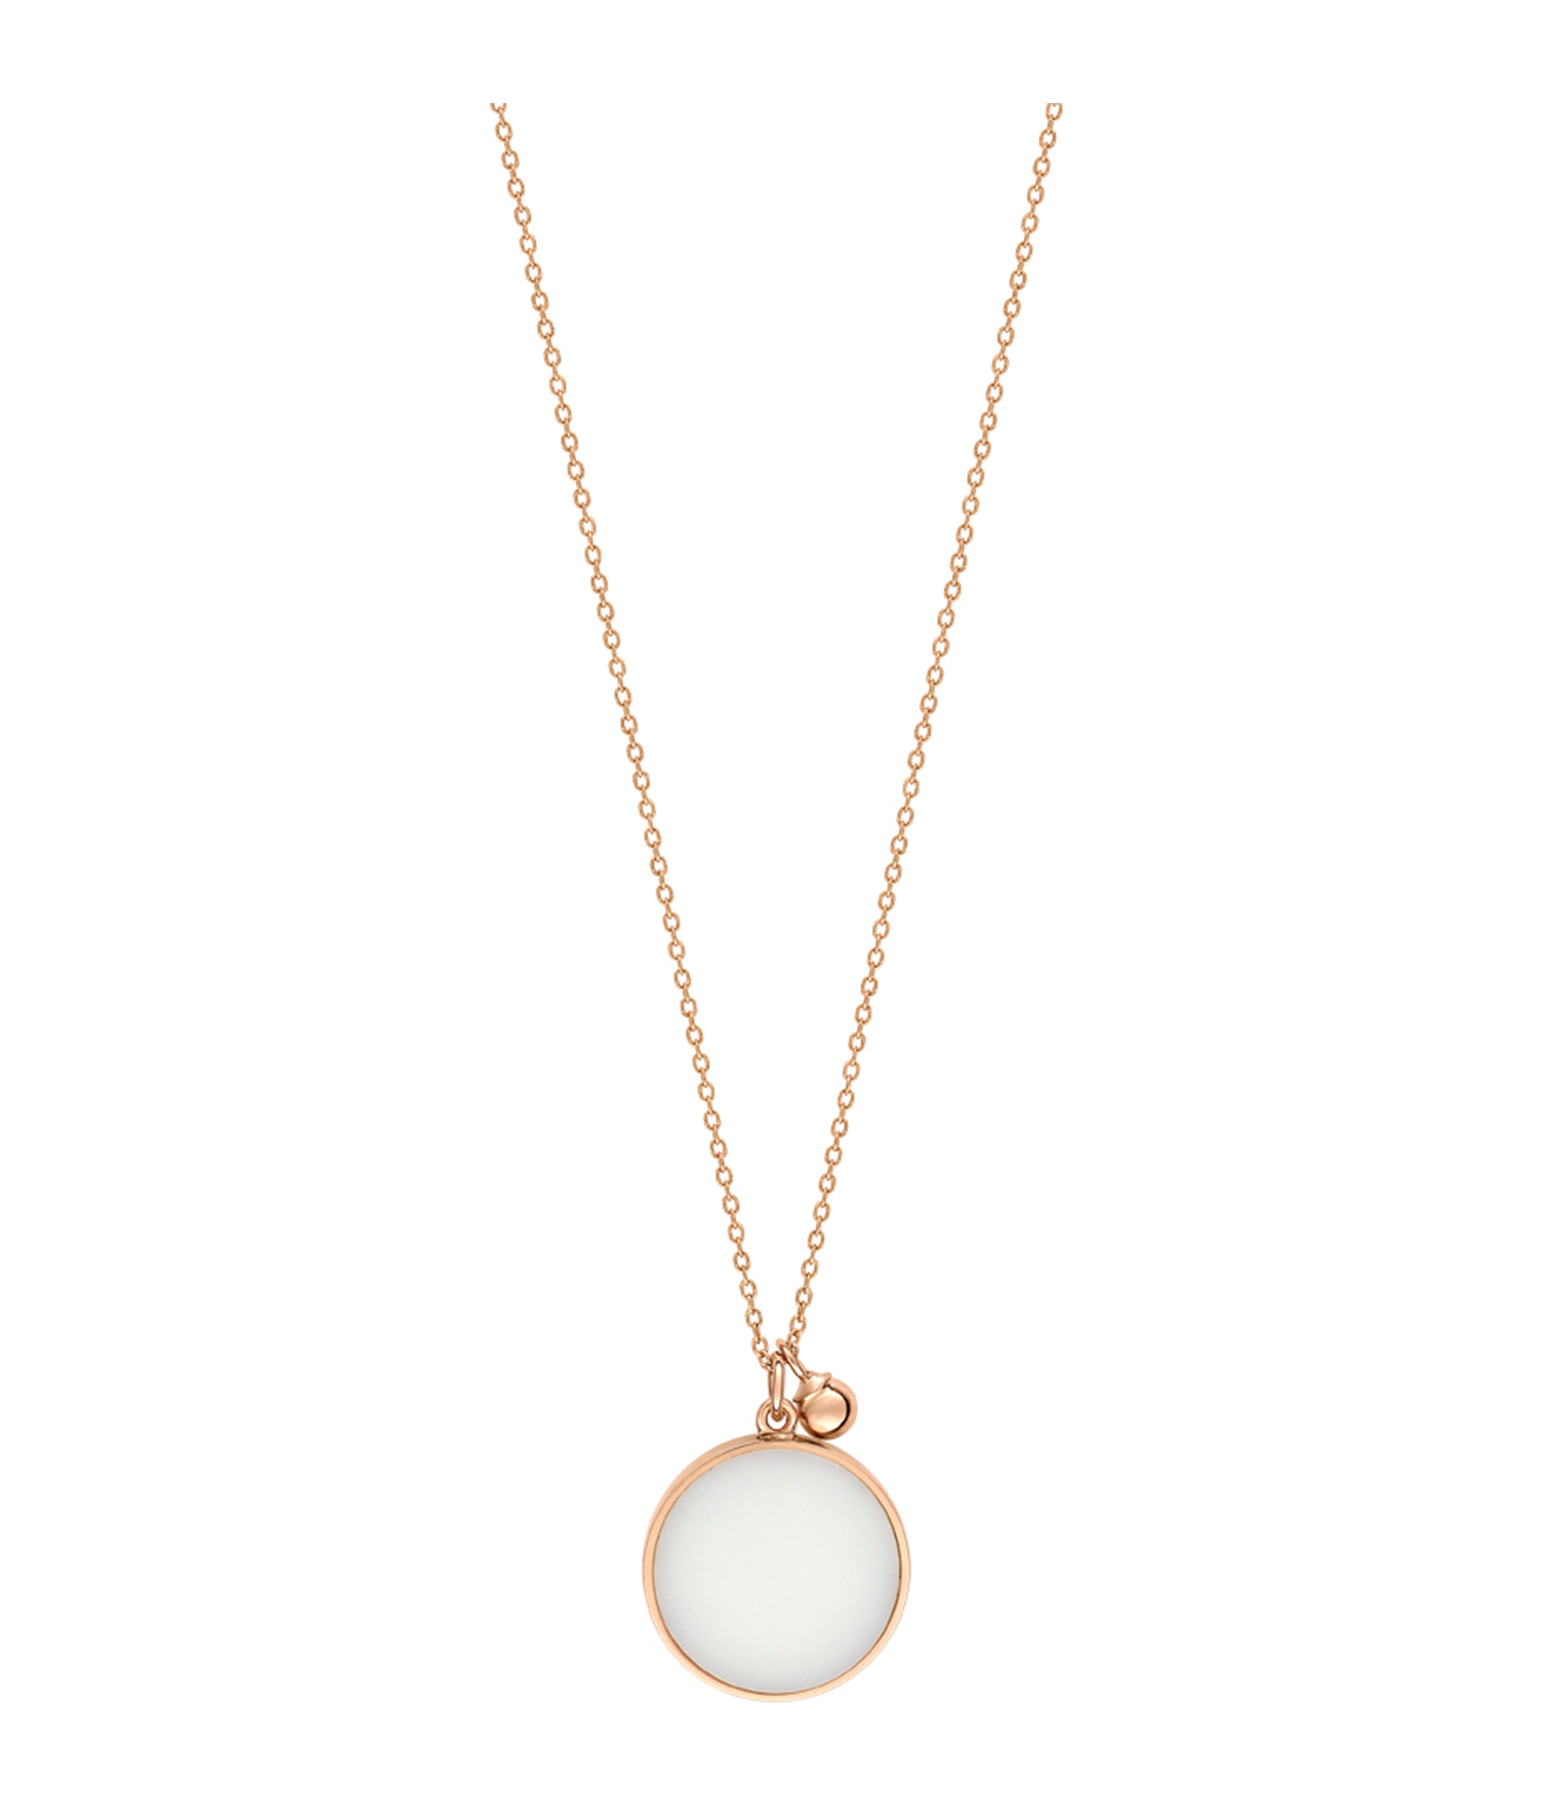 GINETTE NY - Collier Ever Disc Or Rose Agate Blanche